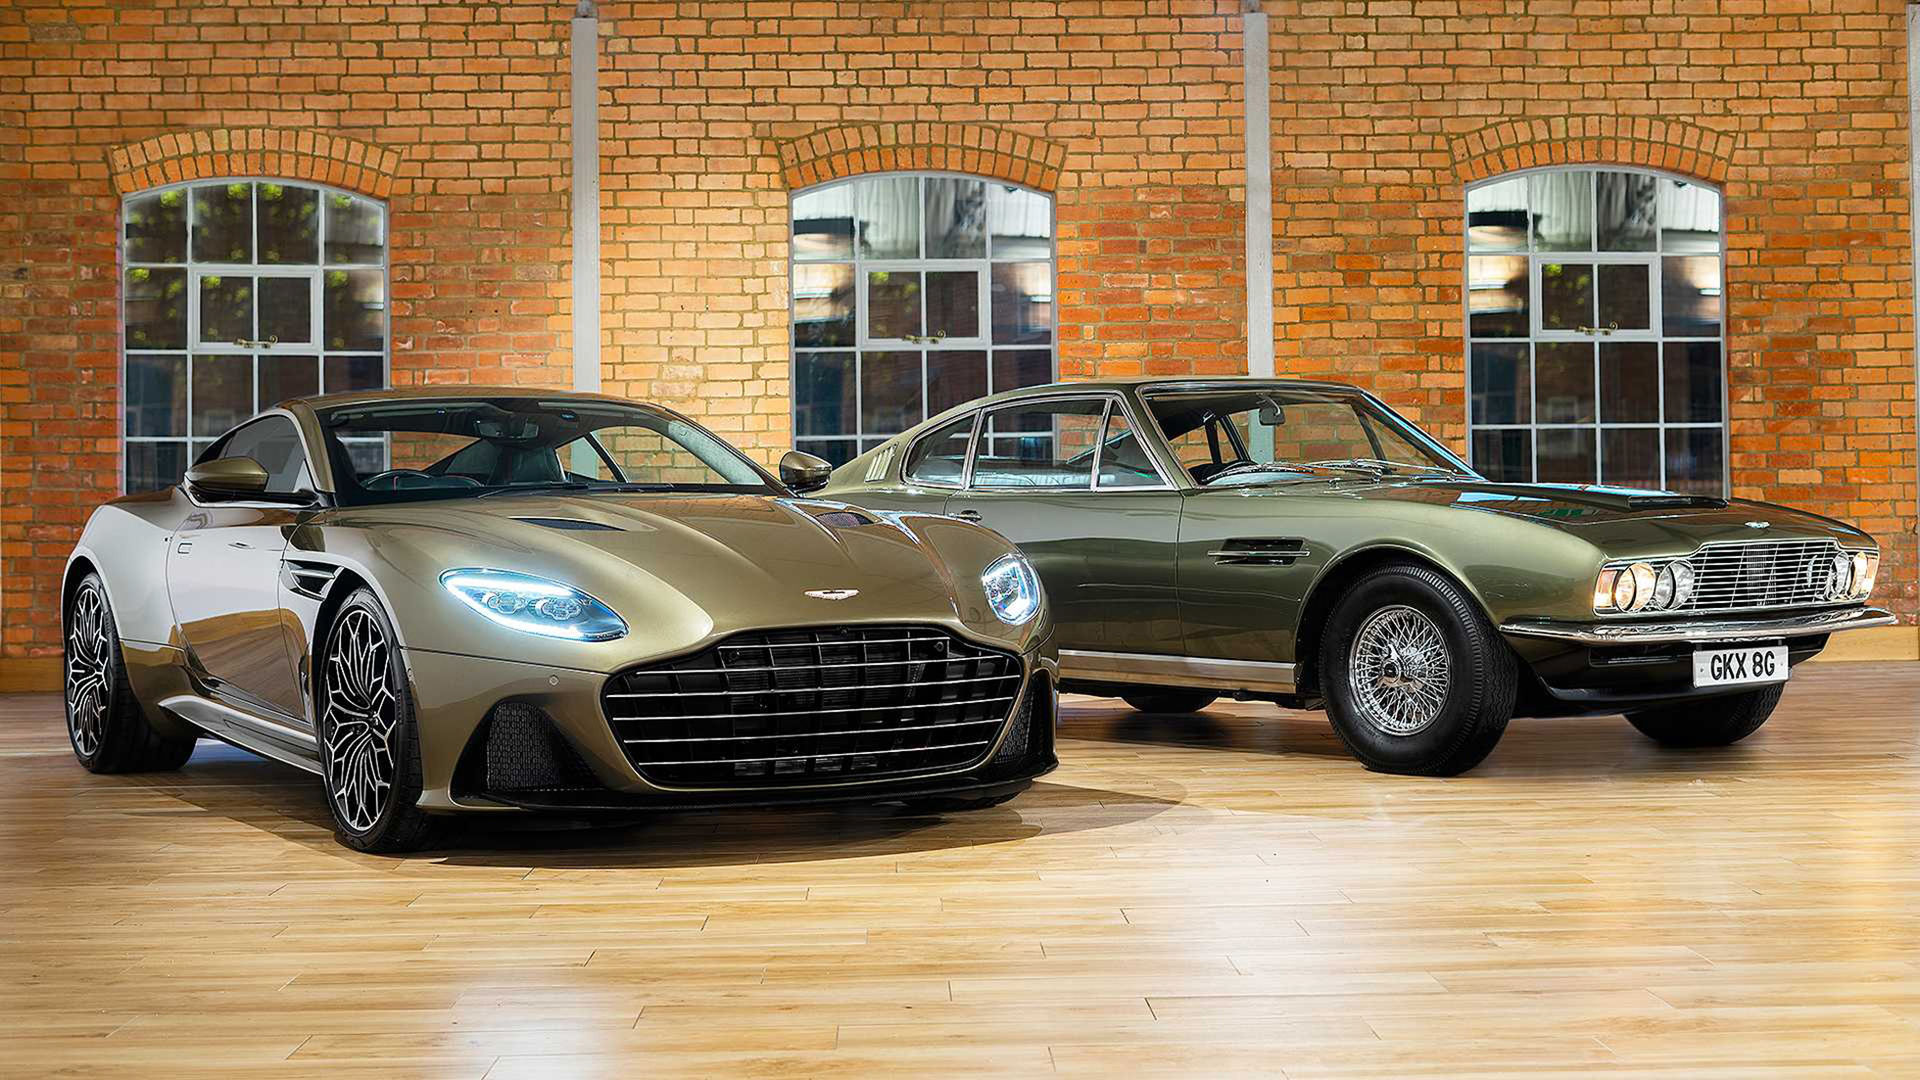 Specialversion av Aston Martin DBS Superleggera